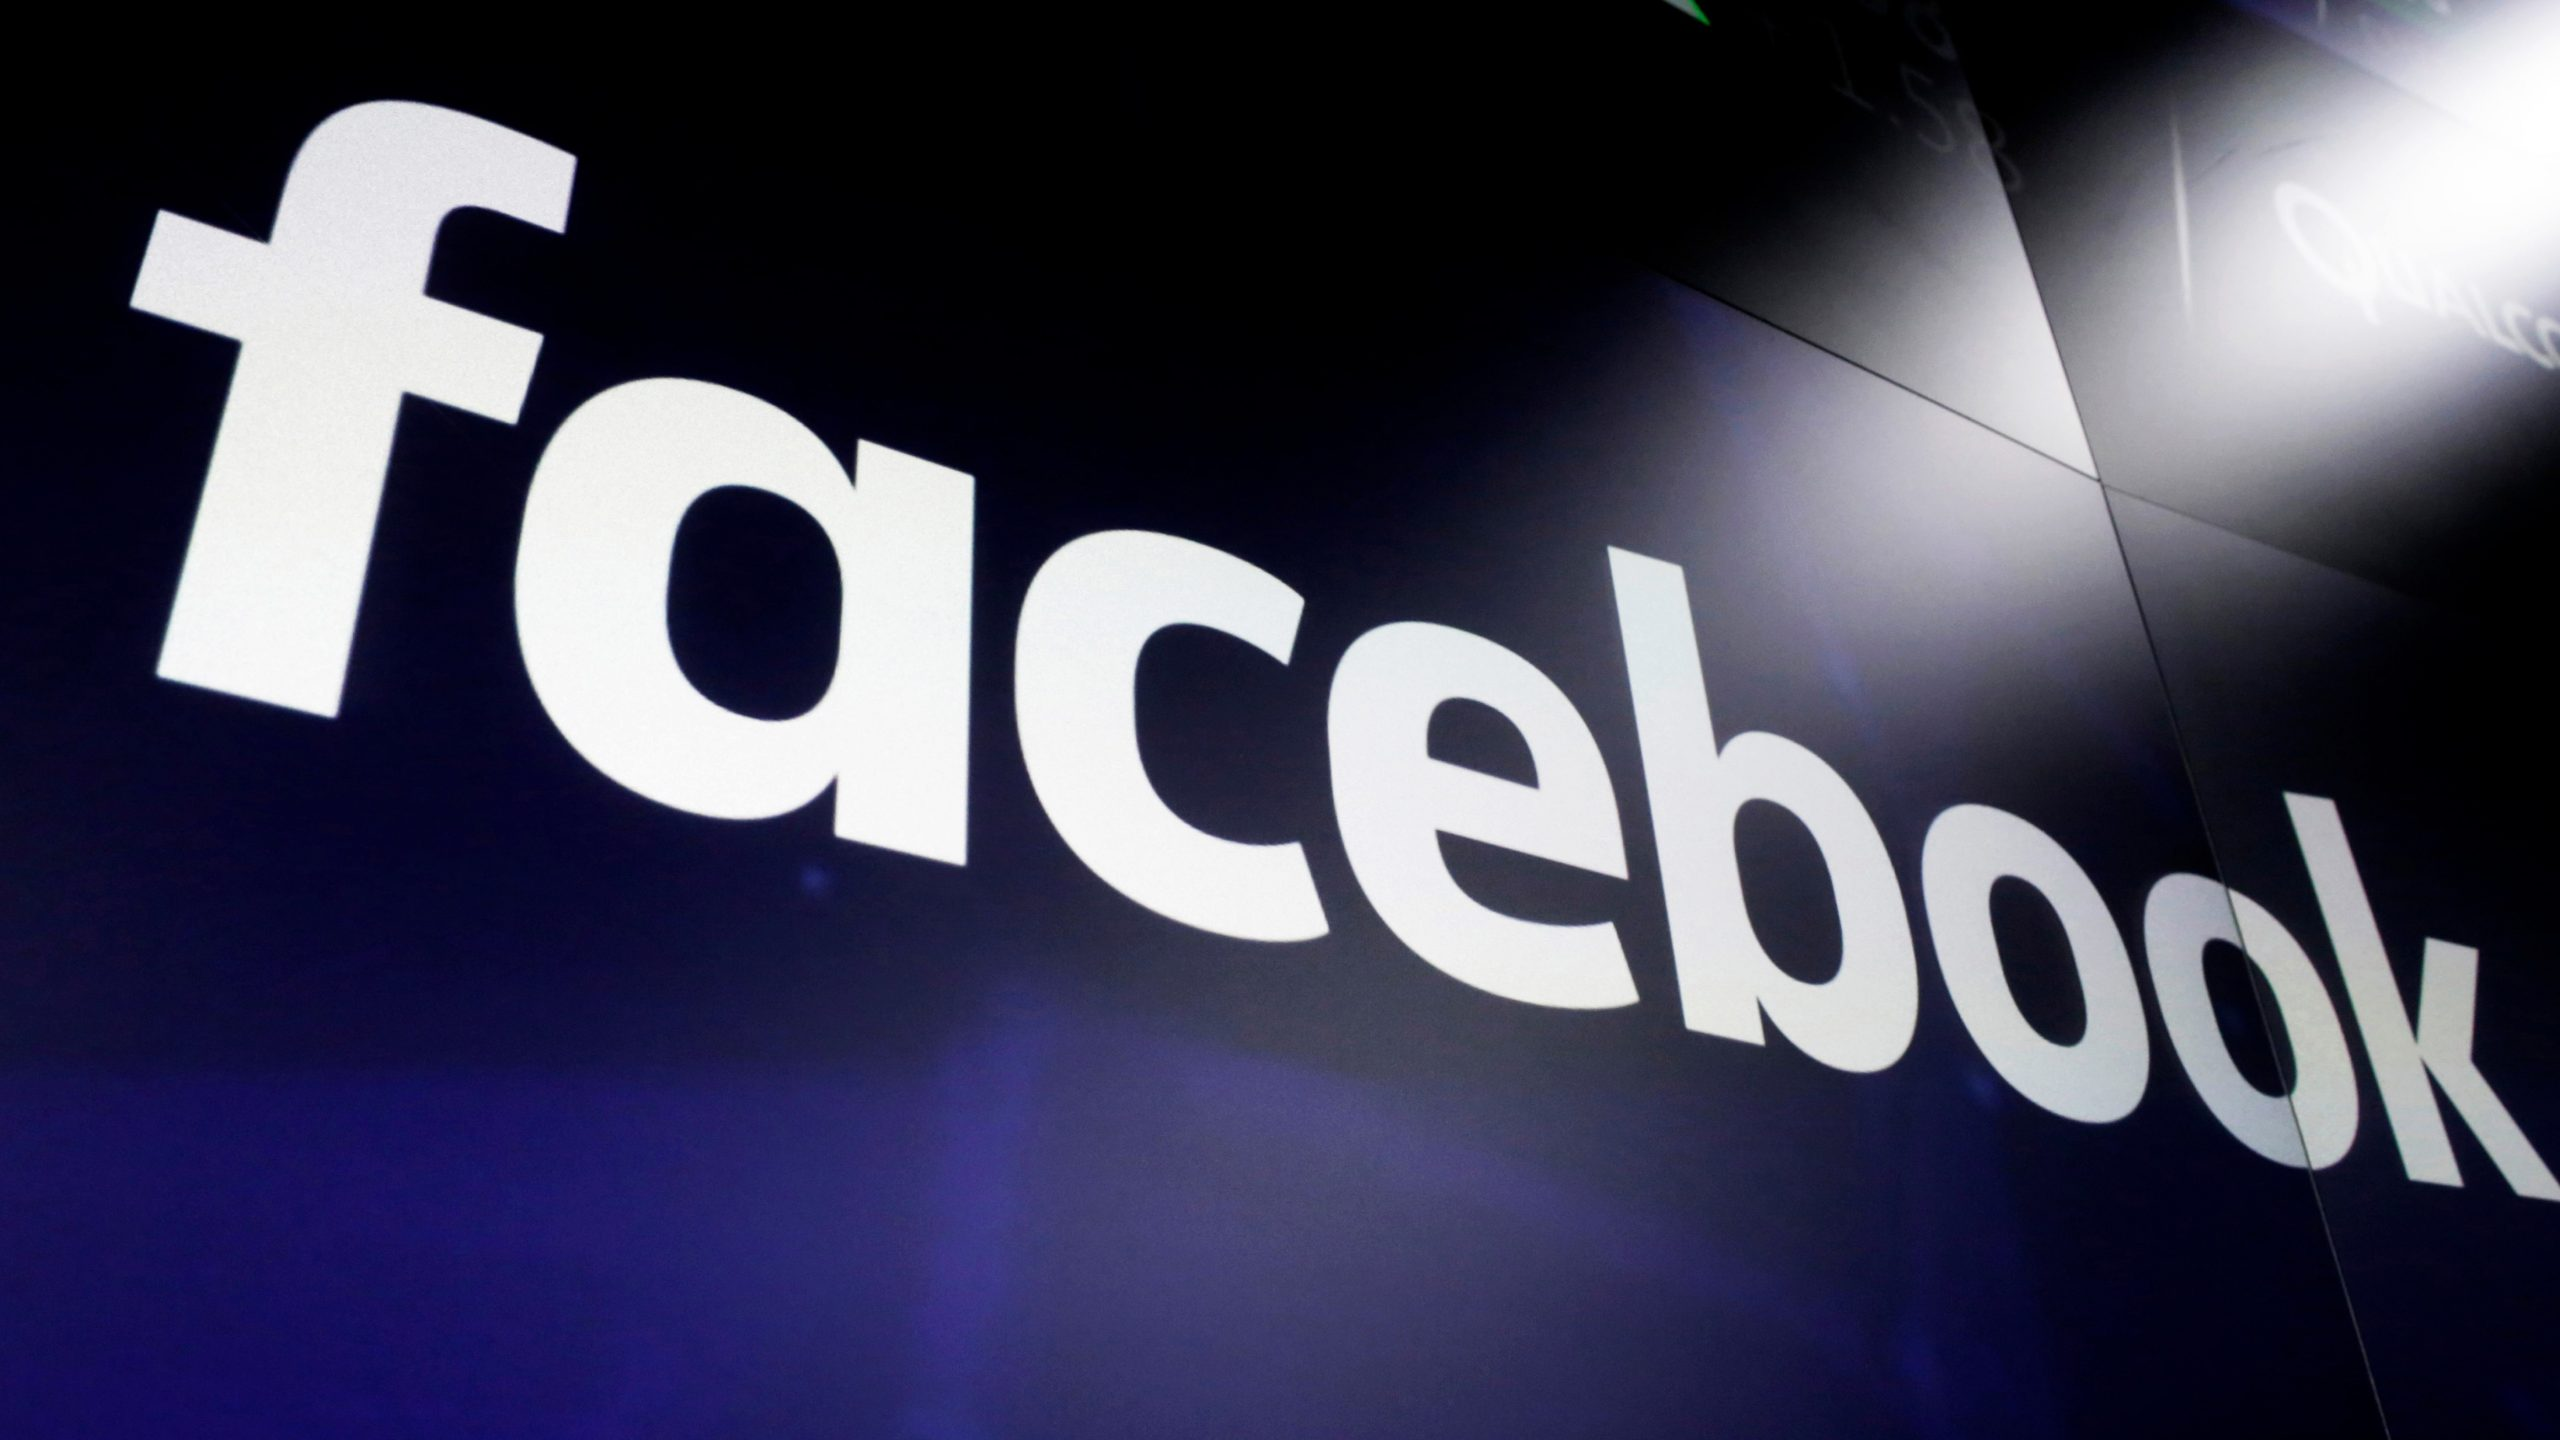 Fb Exec Defends Australia News Blackout as 'Legally Significant,' Claims It Will Pay at Least $1B to News Companies Over Three Years